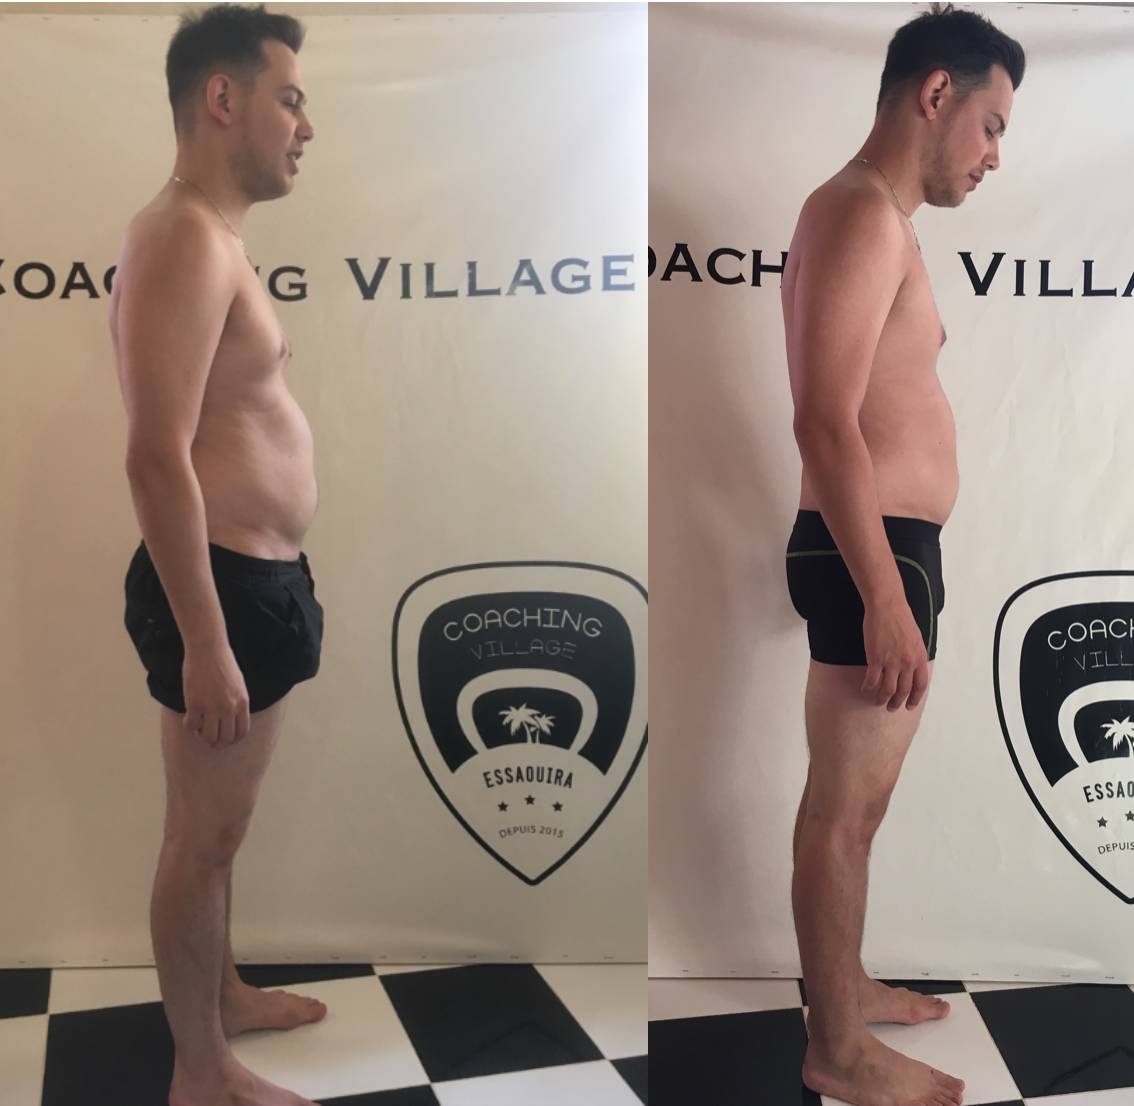 John transformation Coaching Village